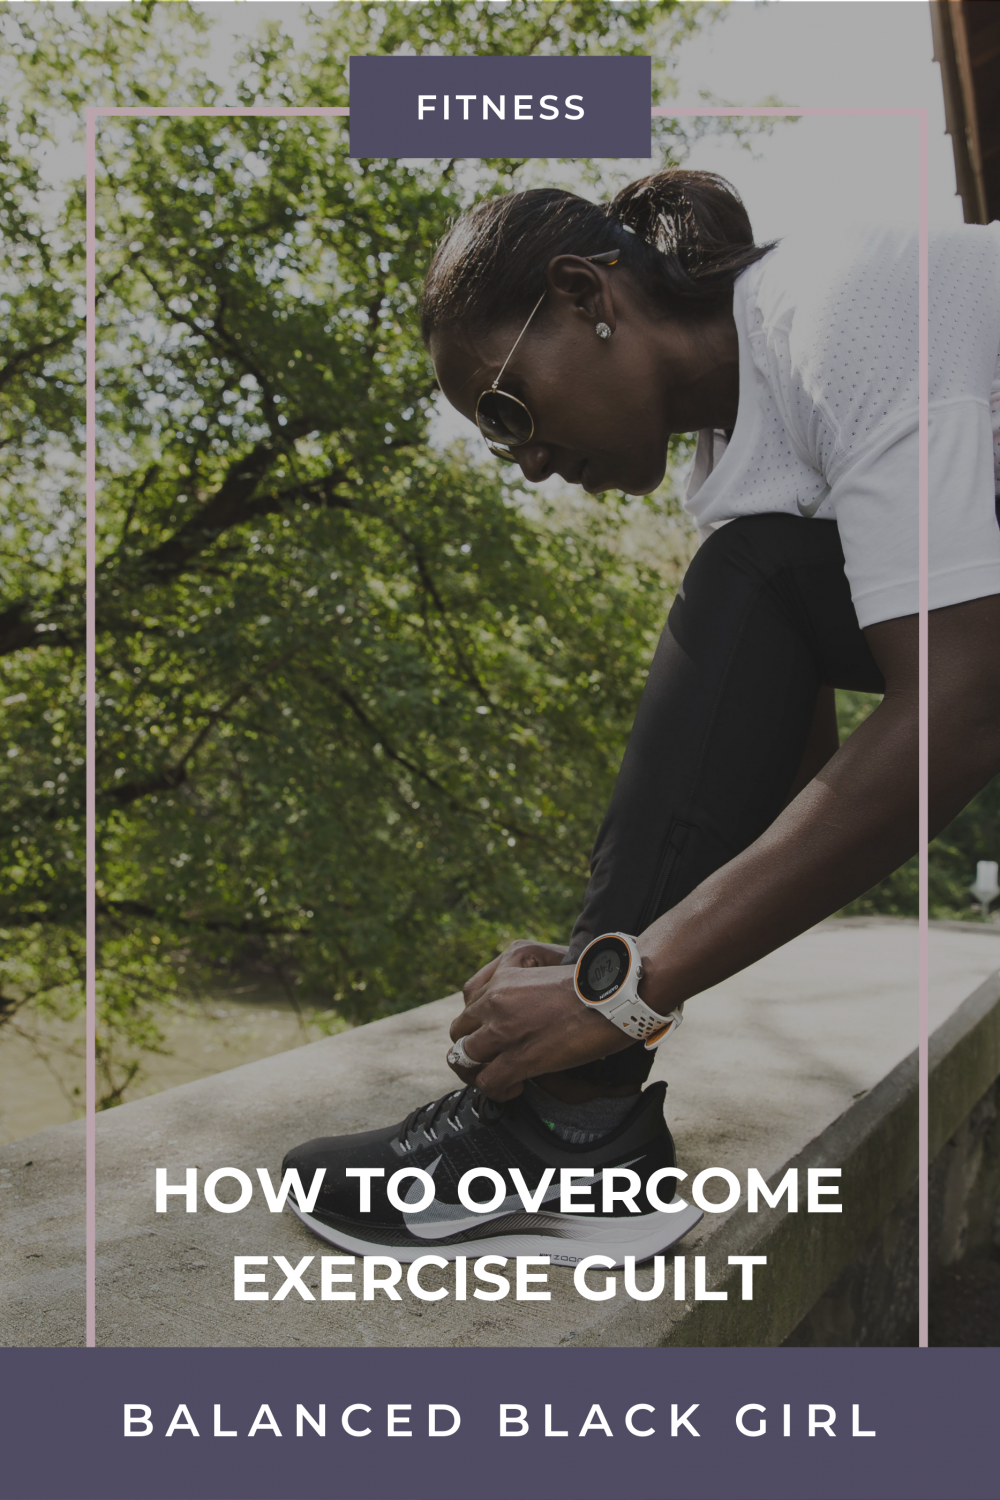 How to Overcome Exercise Guilt